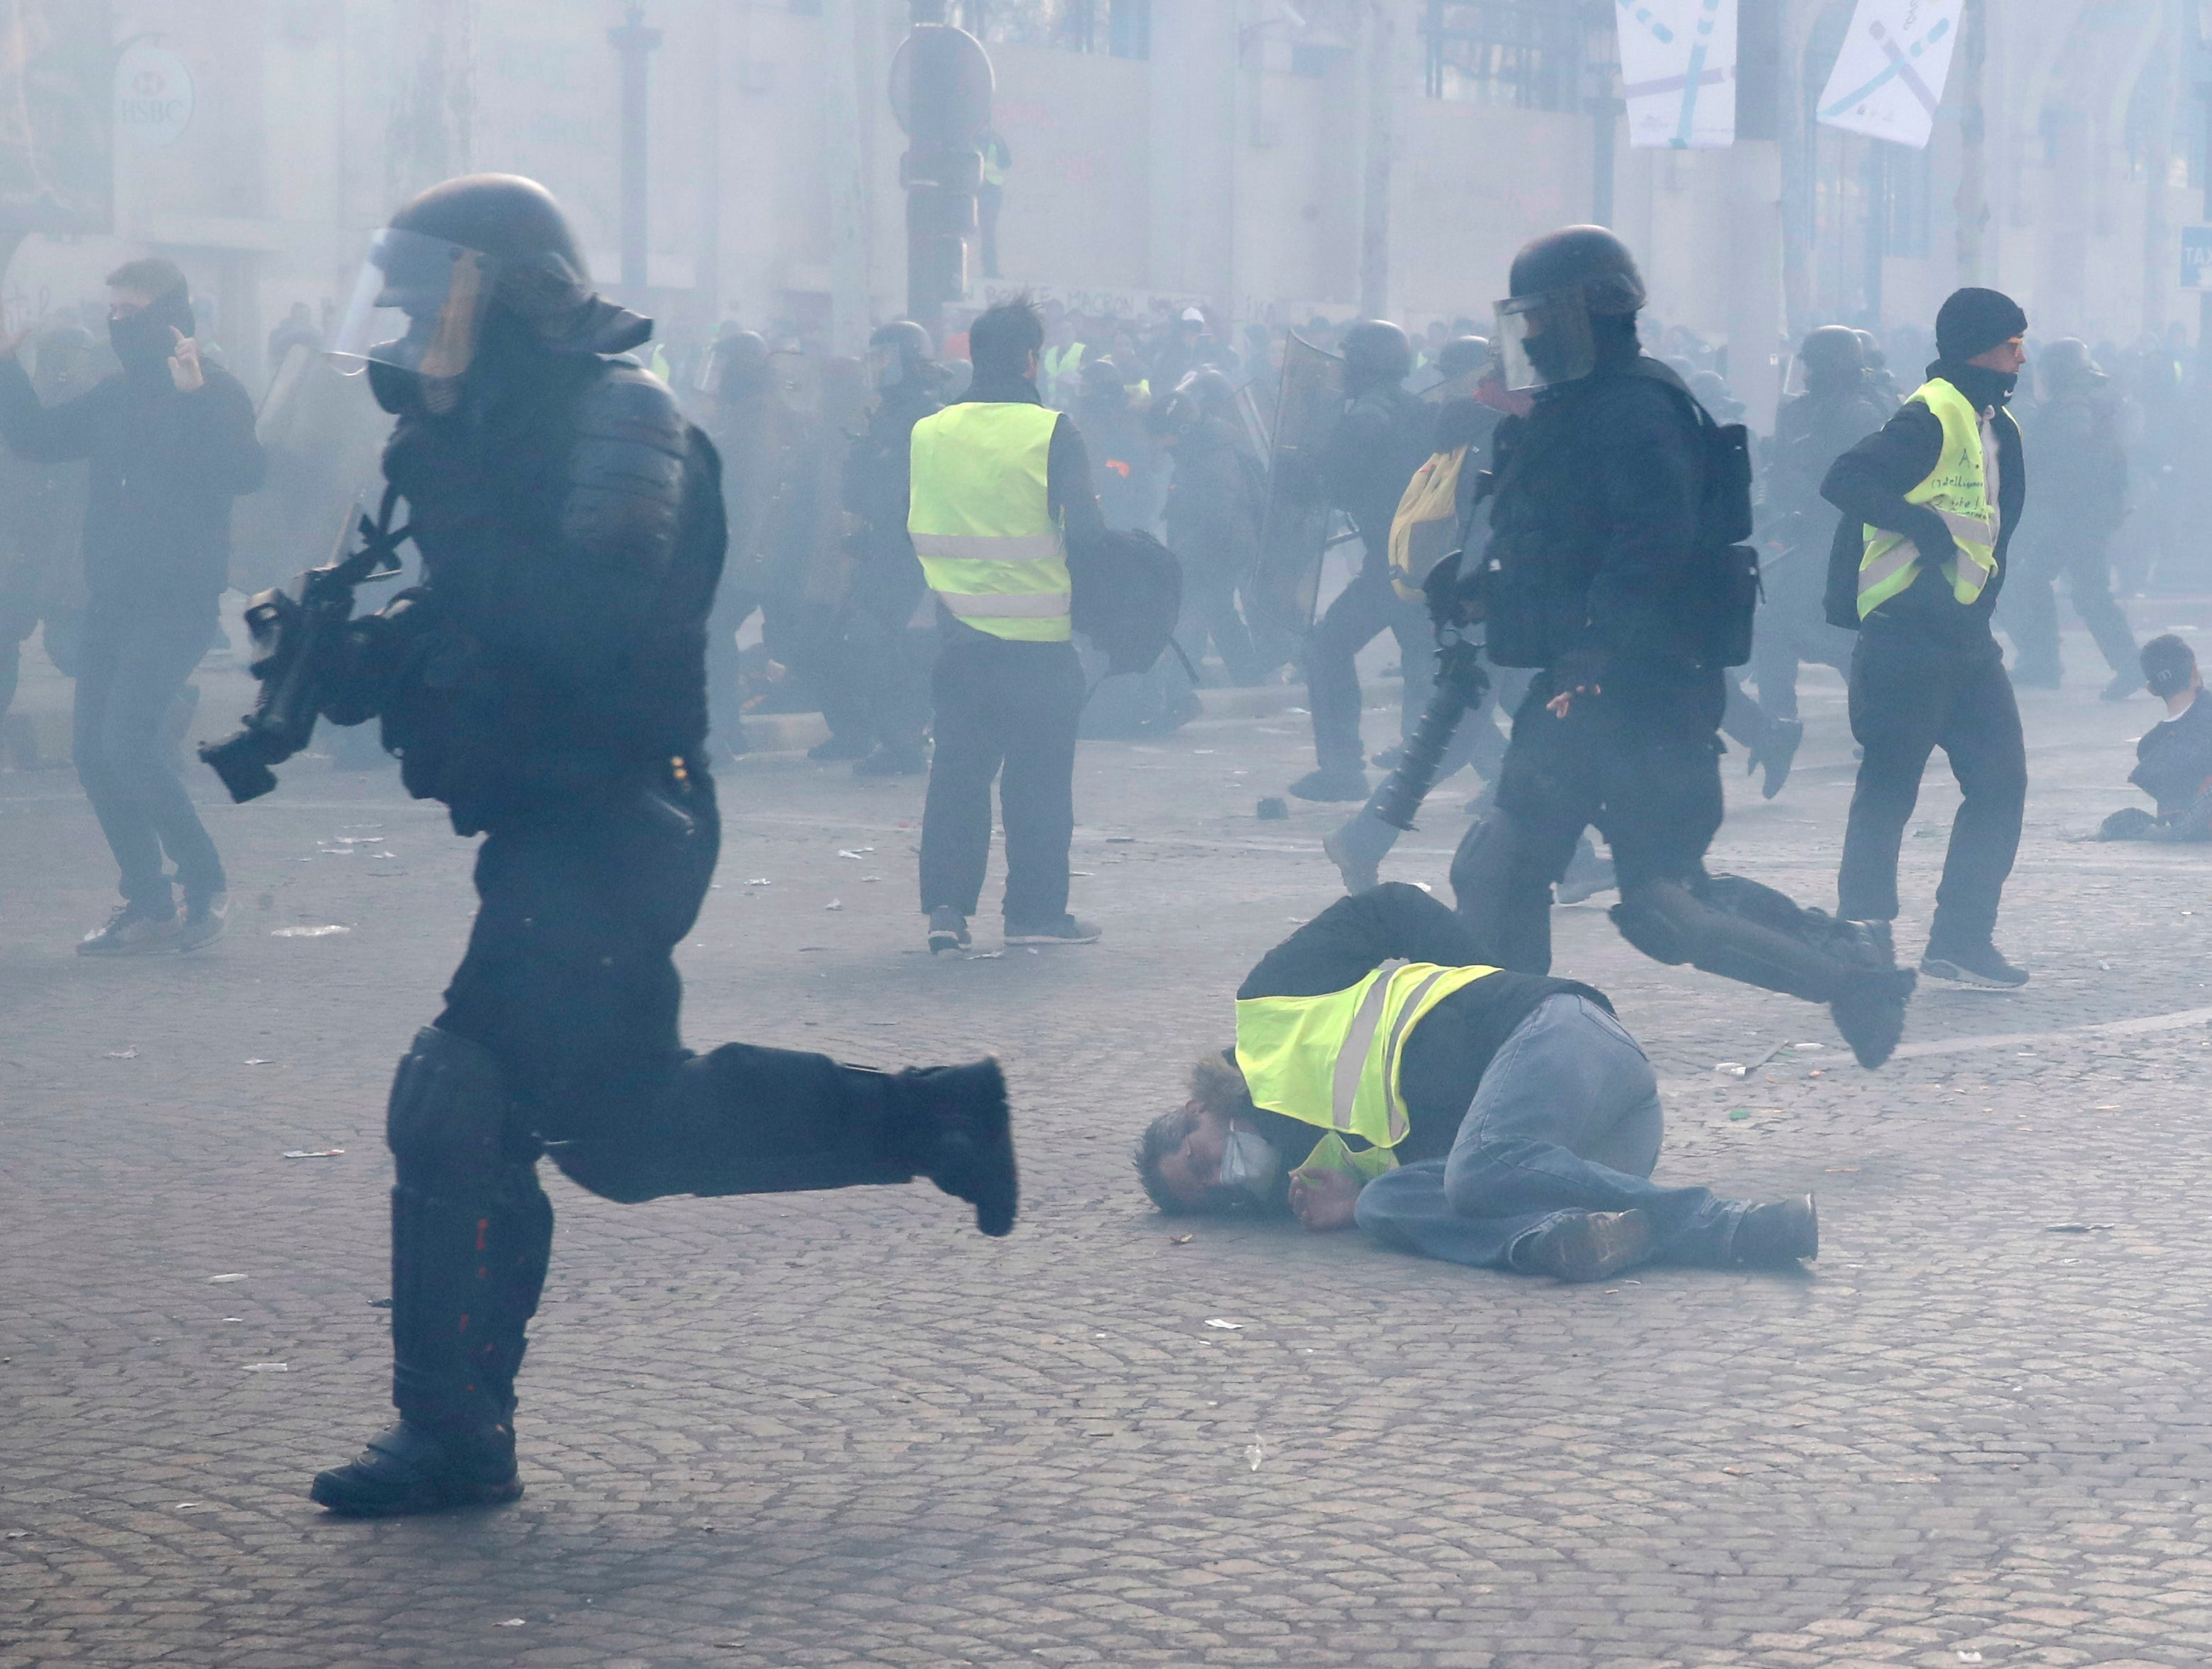 Riot police officers charge as a yellow vests demonstrator falls Saturday, March 16, 2019 in Paris. Paris police say more than 100 people have been arrested amid rioting in the French capital by yellow vest protesters and clashes with police. They set life-threatening fires, smashed up luxury stores and clashed with police firing tear gas and water cannon